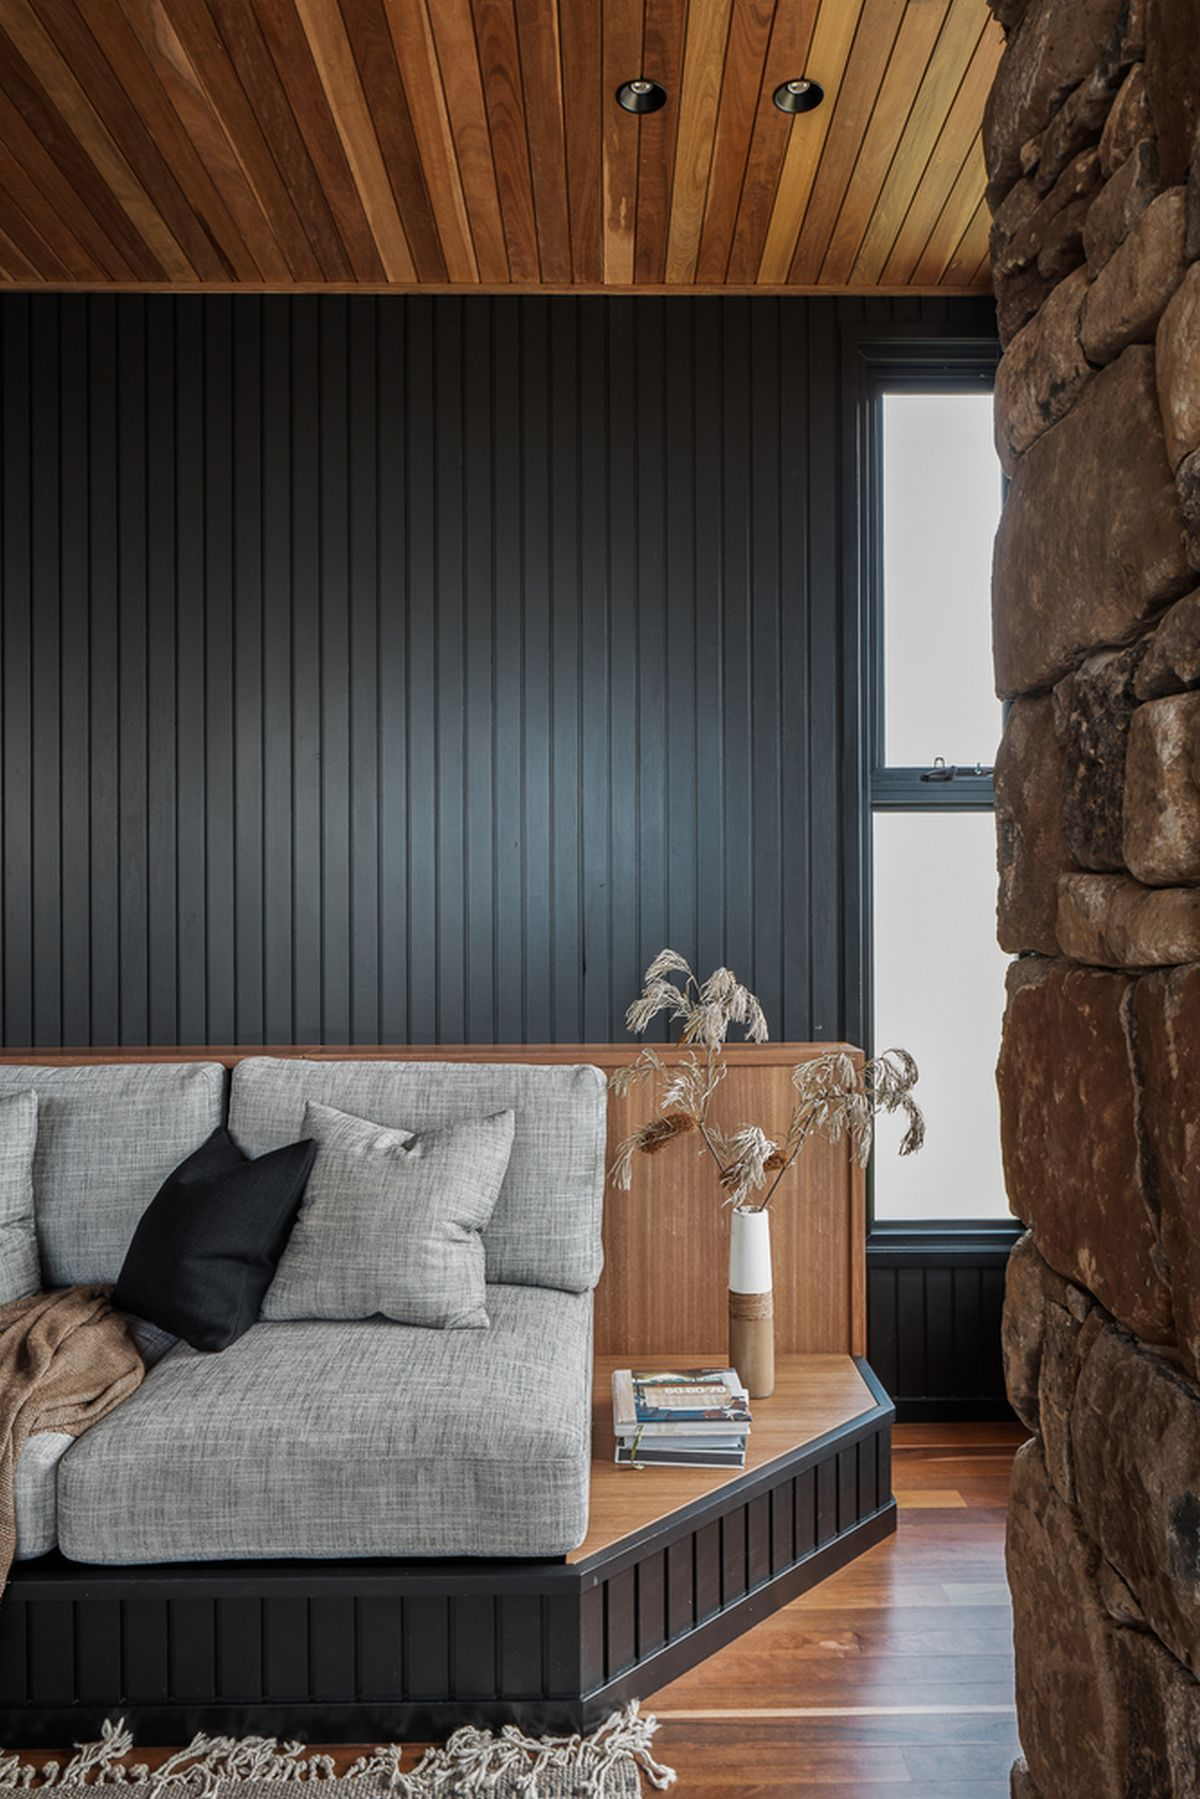 The color palette employed throughout the house is defined by various dark tones